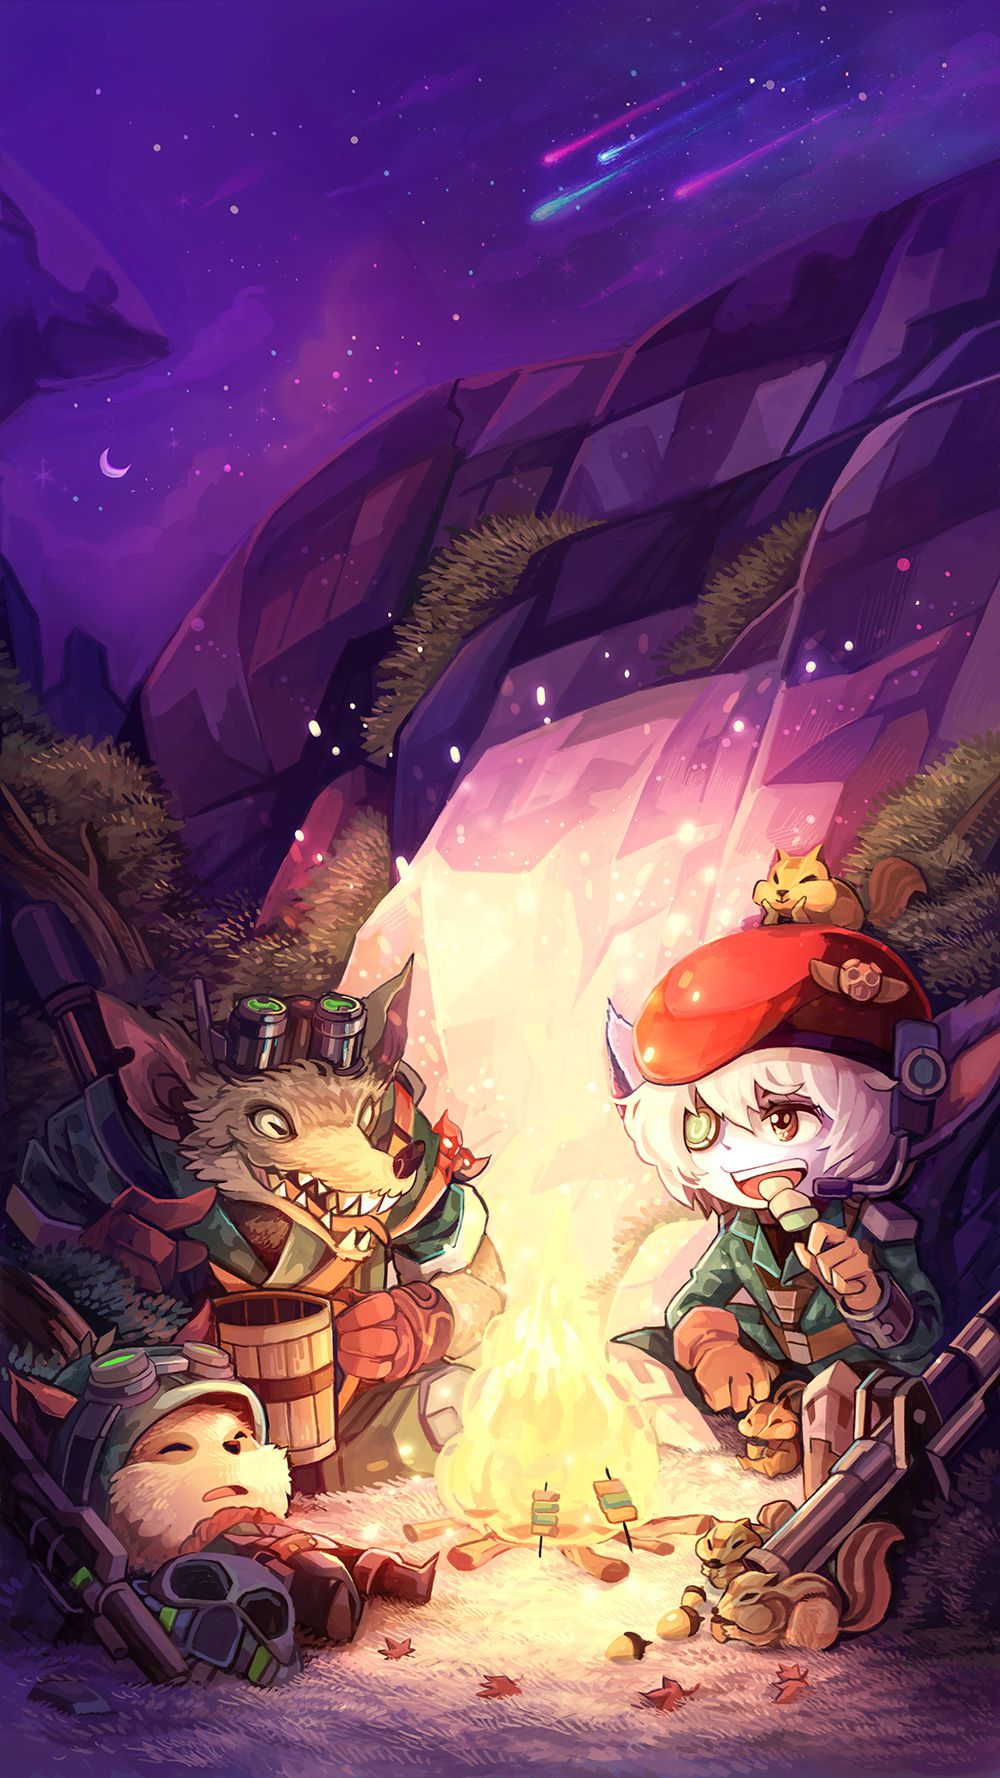 Download Cute Phone Wallpapers From The Korean League Mobile Store The Rift Herald